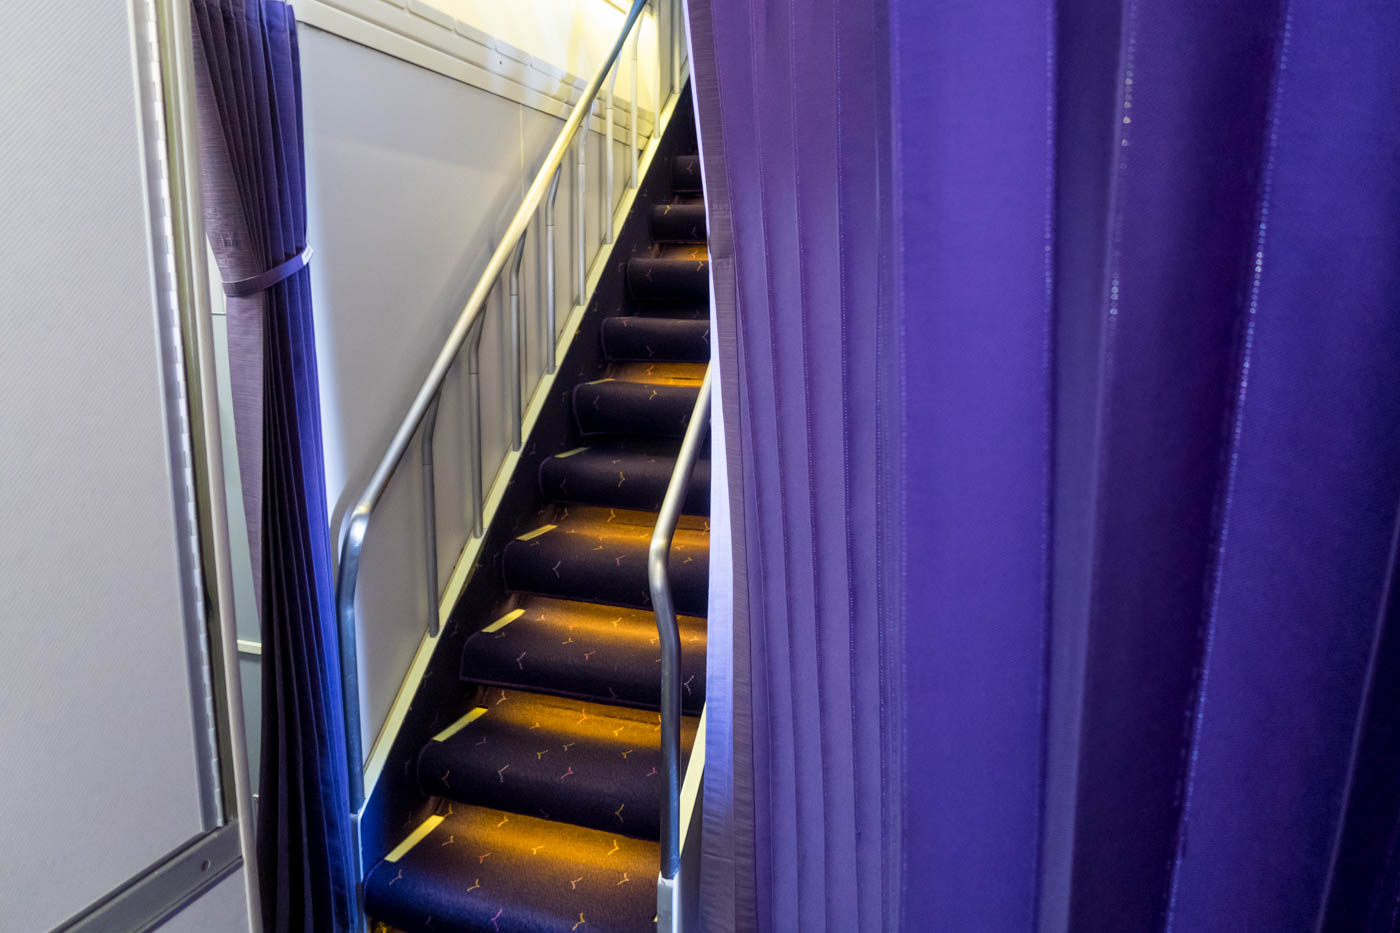 Thai Airways Boeing 747-400 Staircase